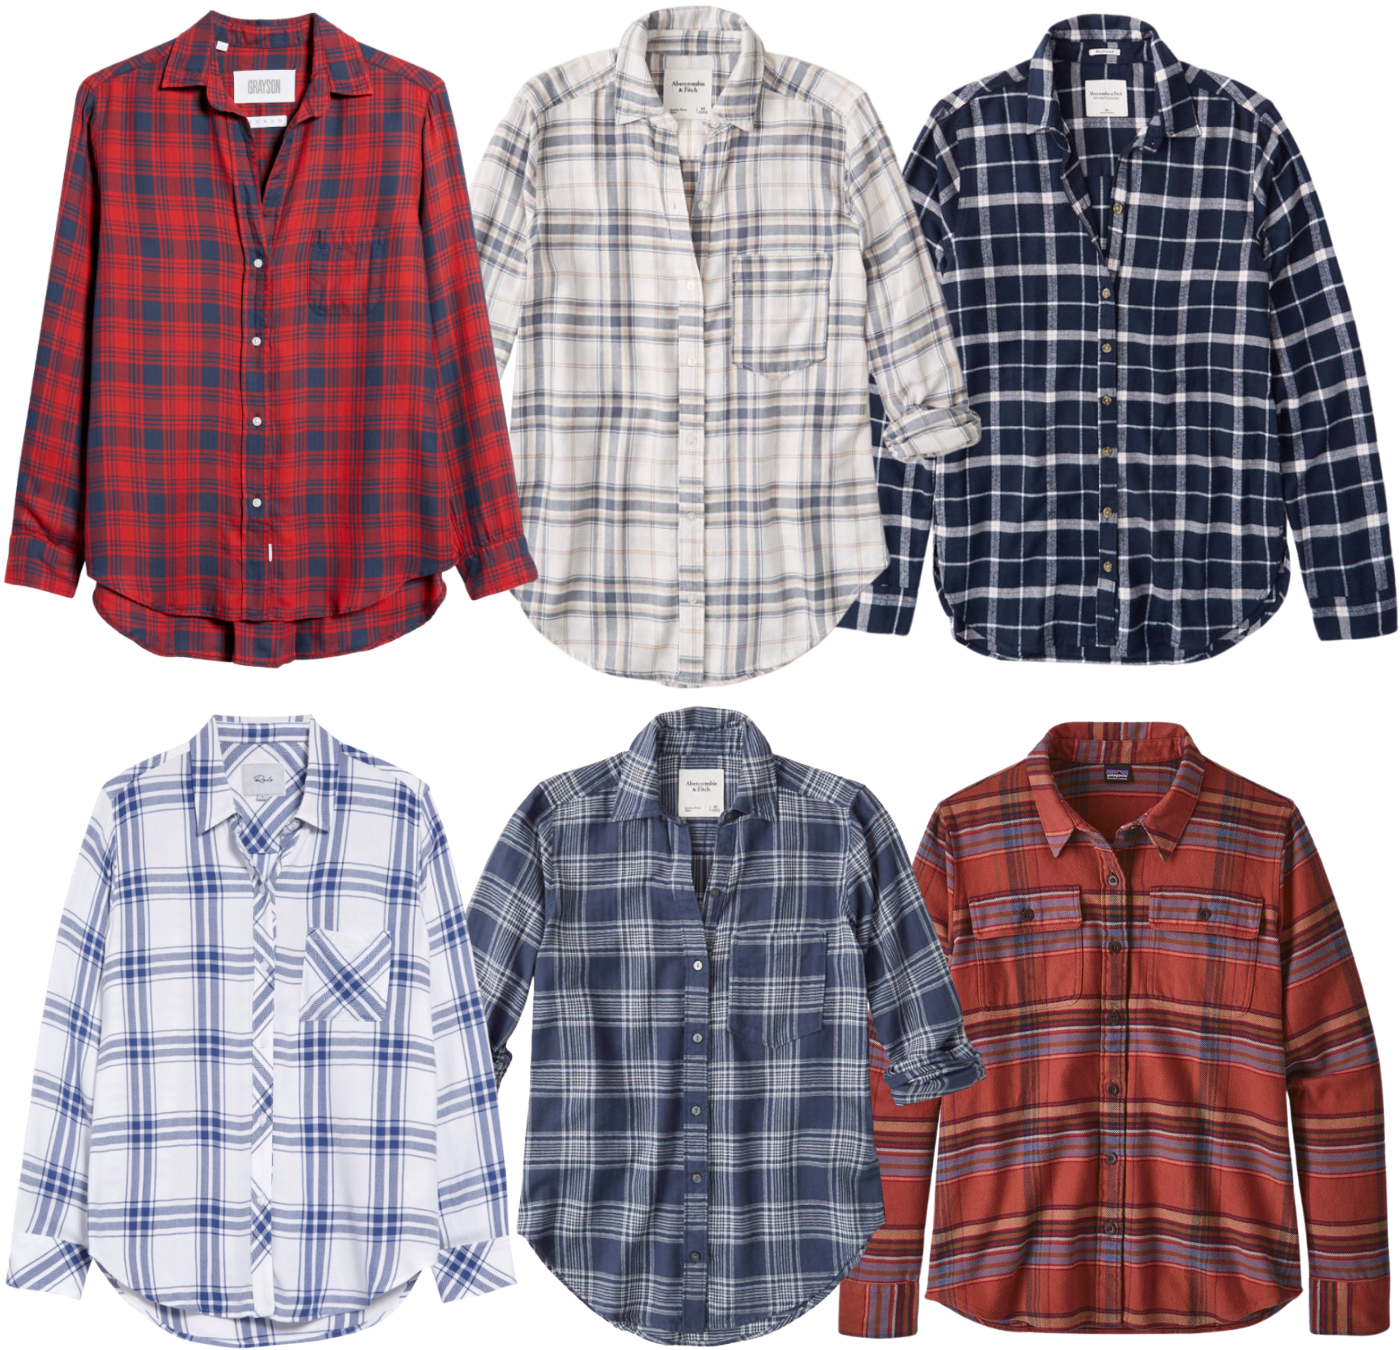 6 Flannels for Fall